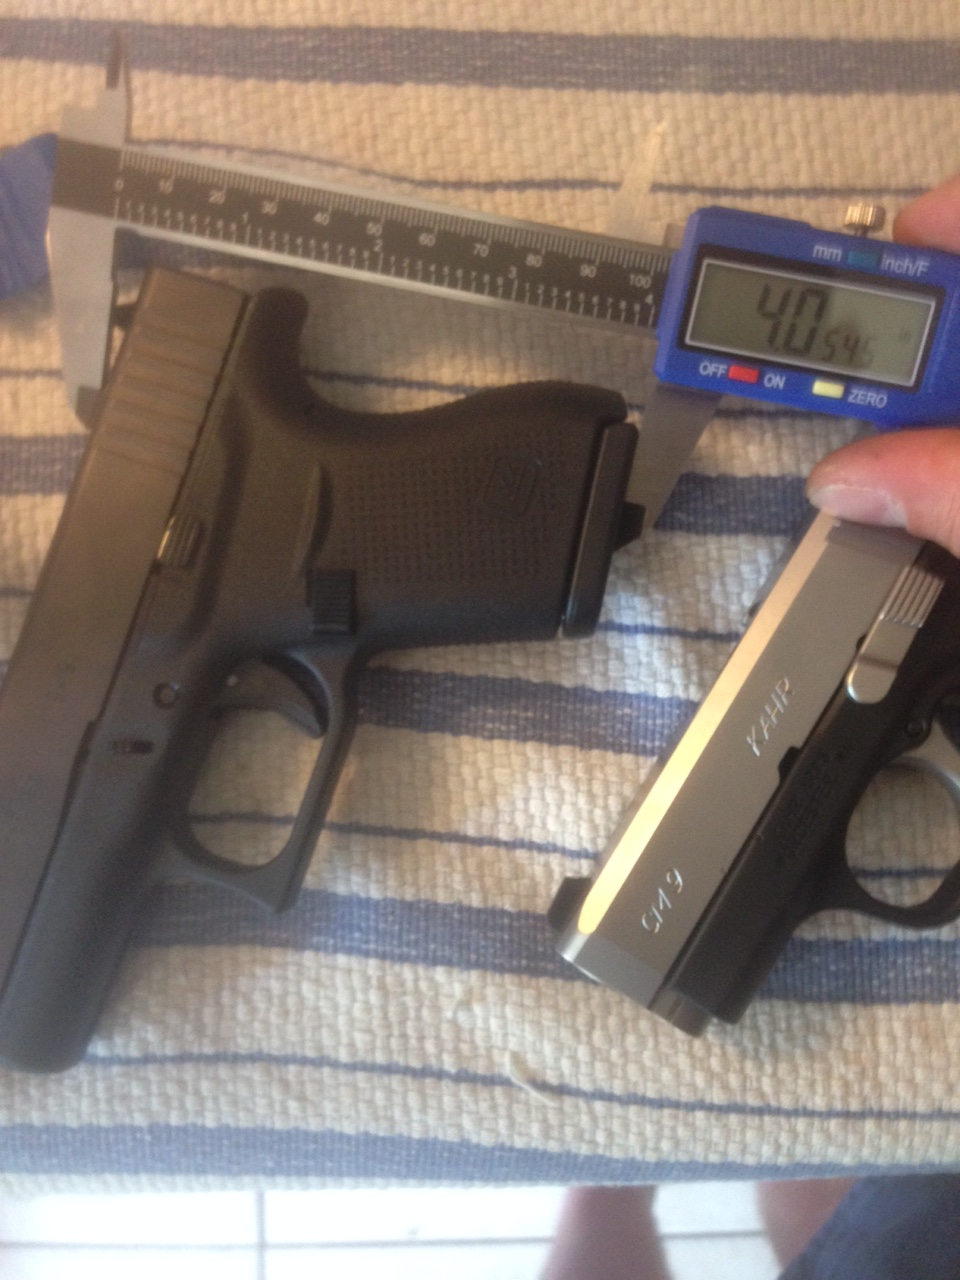 CM9 vs Glock 43 size comparison: not much real-world difference-img_1802.jpg